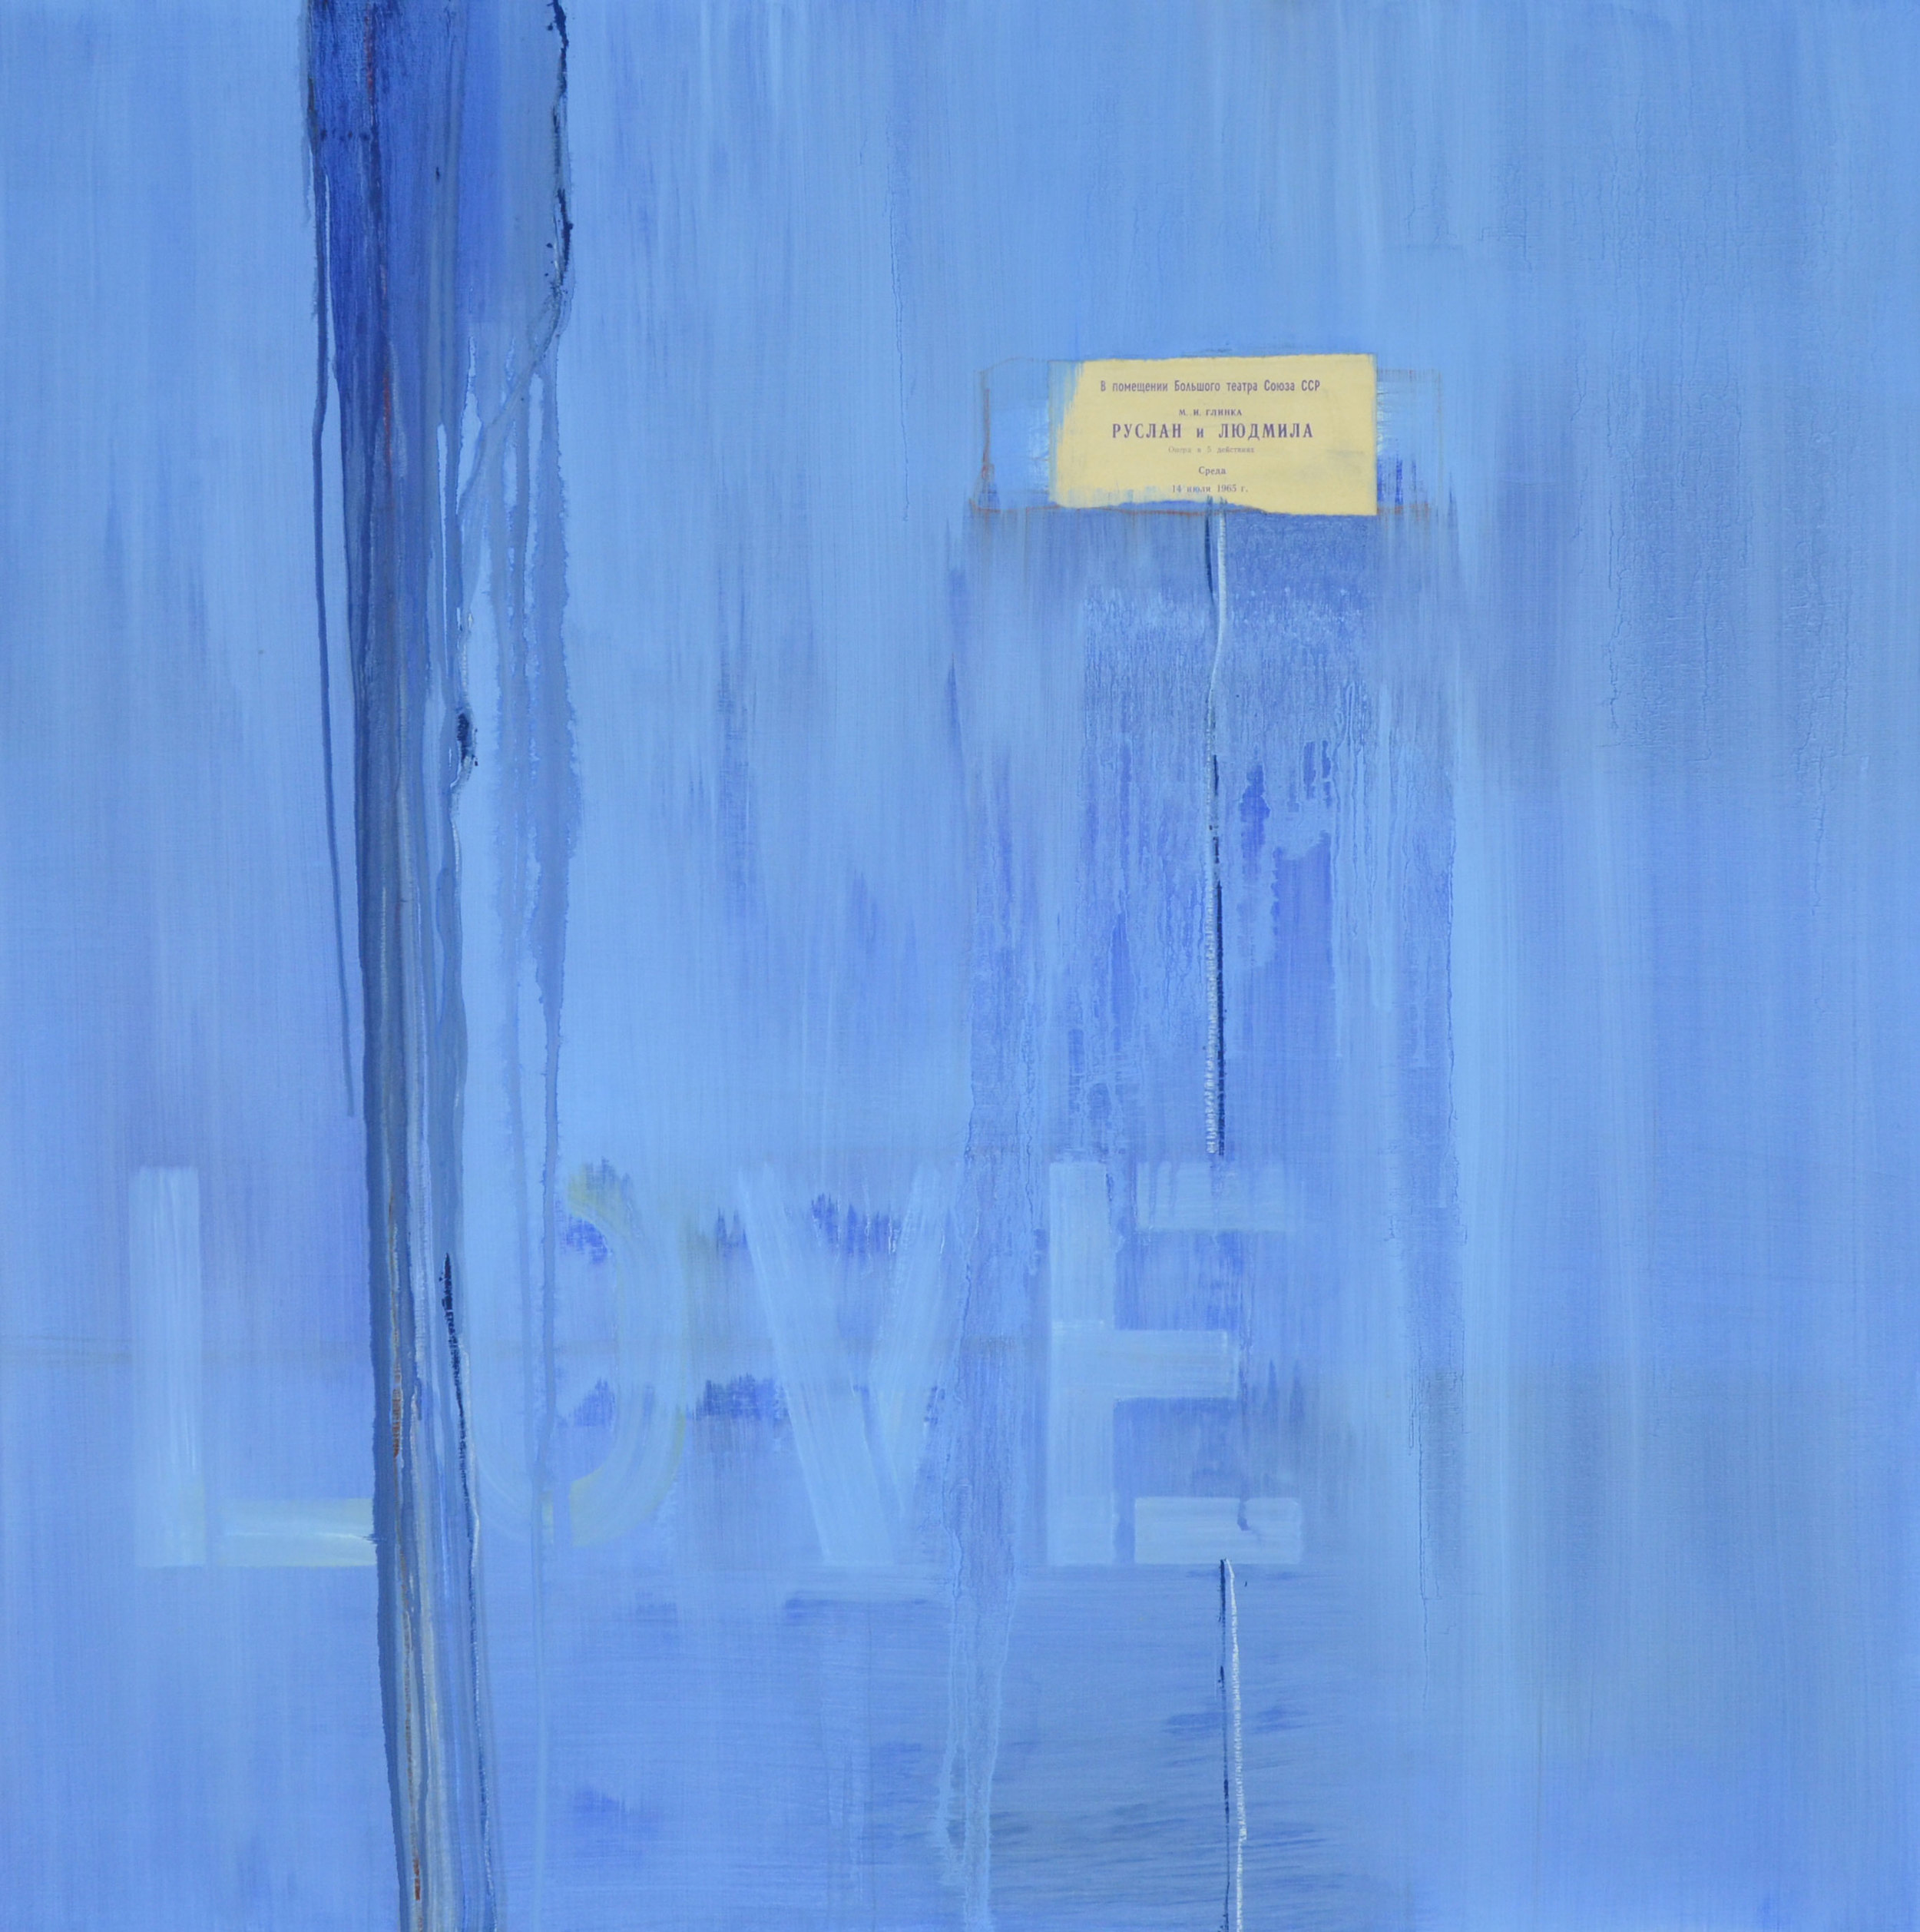 Love 2015. Oil, chalk and collage on panel, 29 x 29 inches  Jennifer Davey all rights reserved